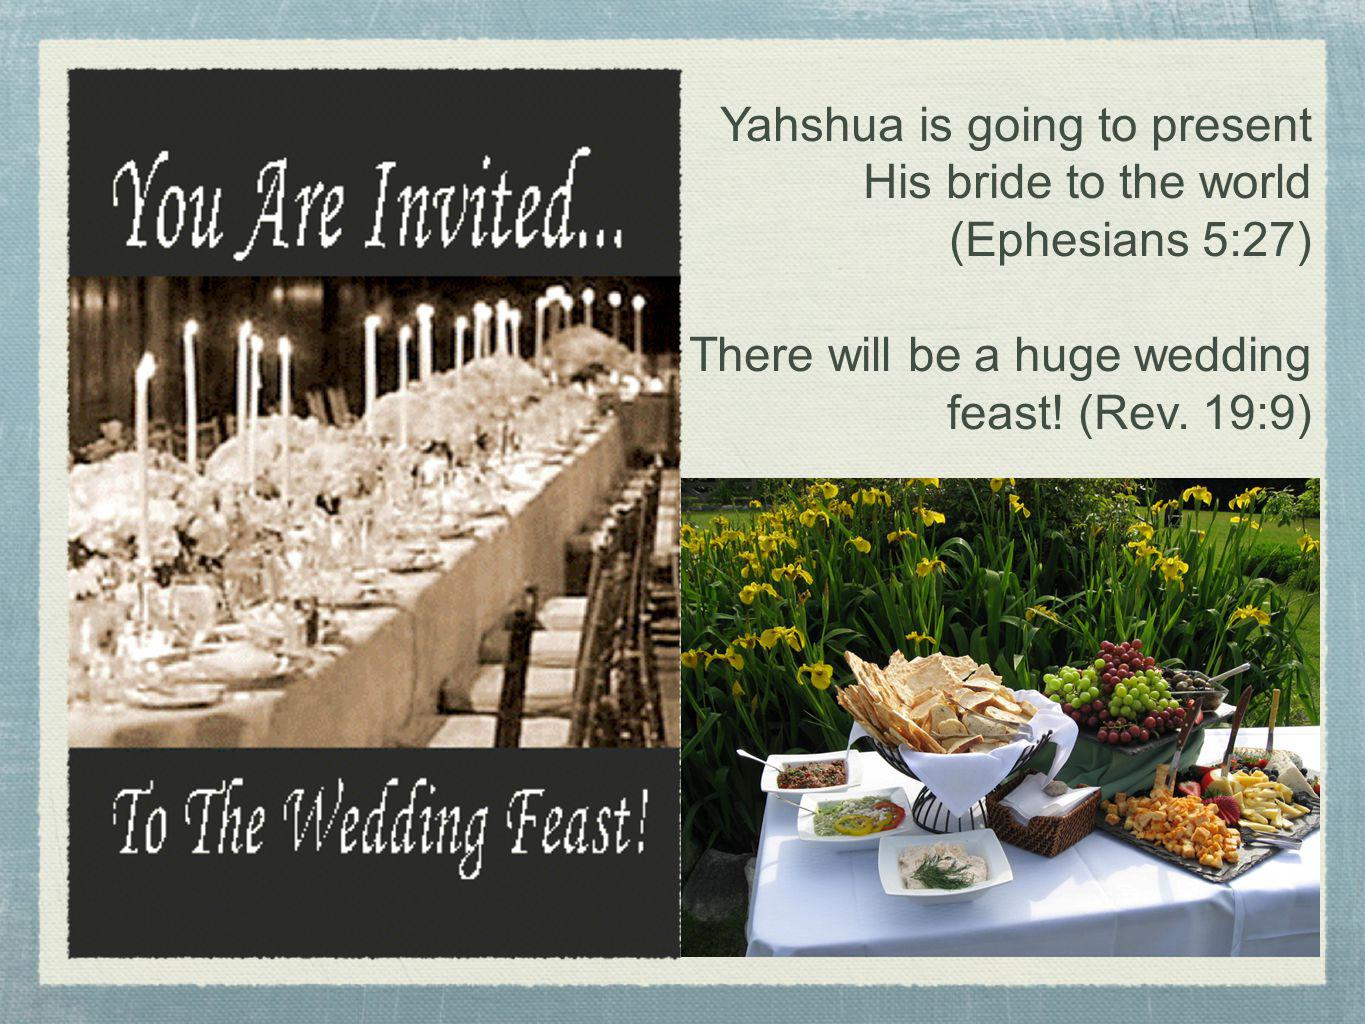 Yahshua is going to present His bride to the world (Ephesians 5:27)